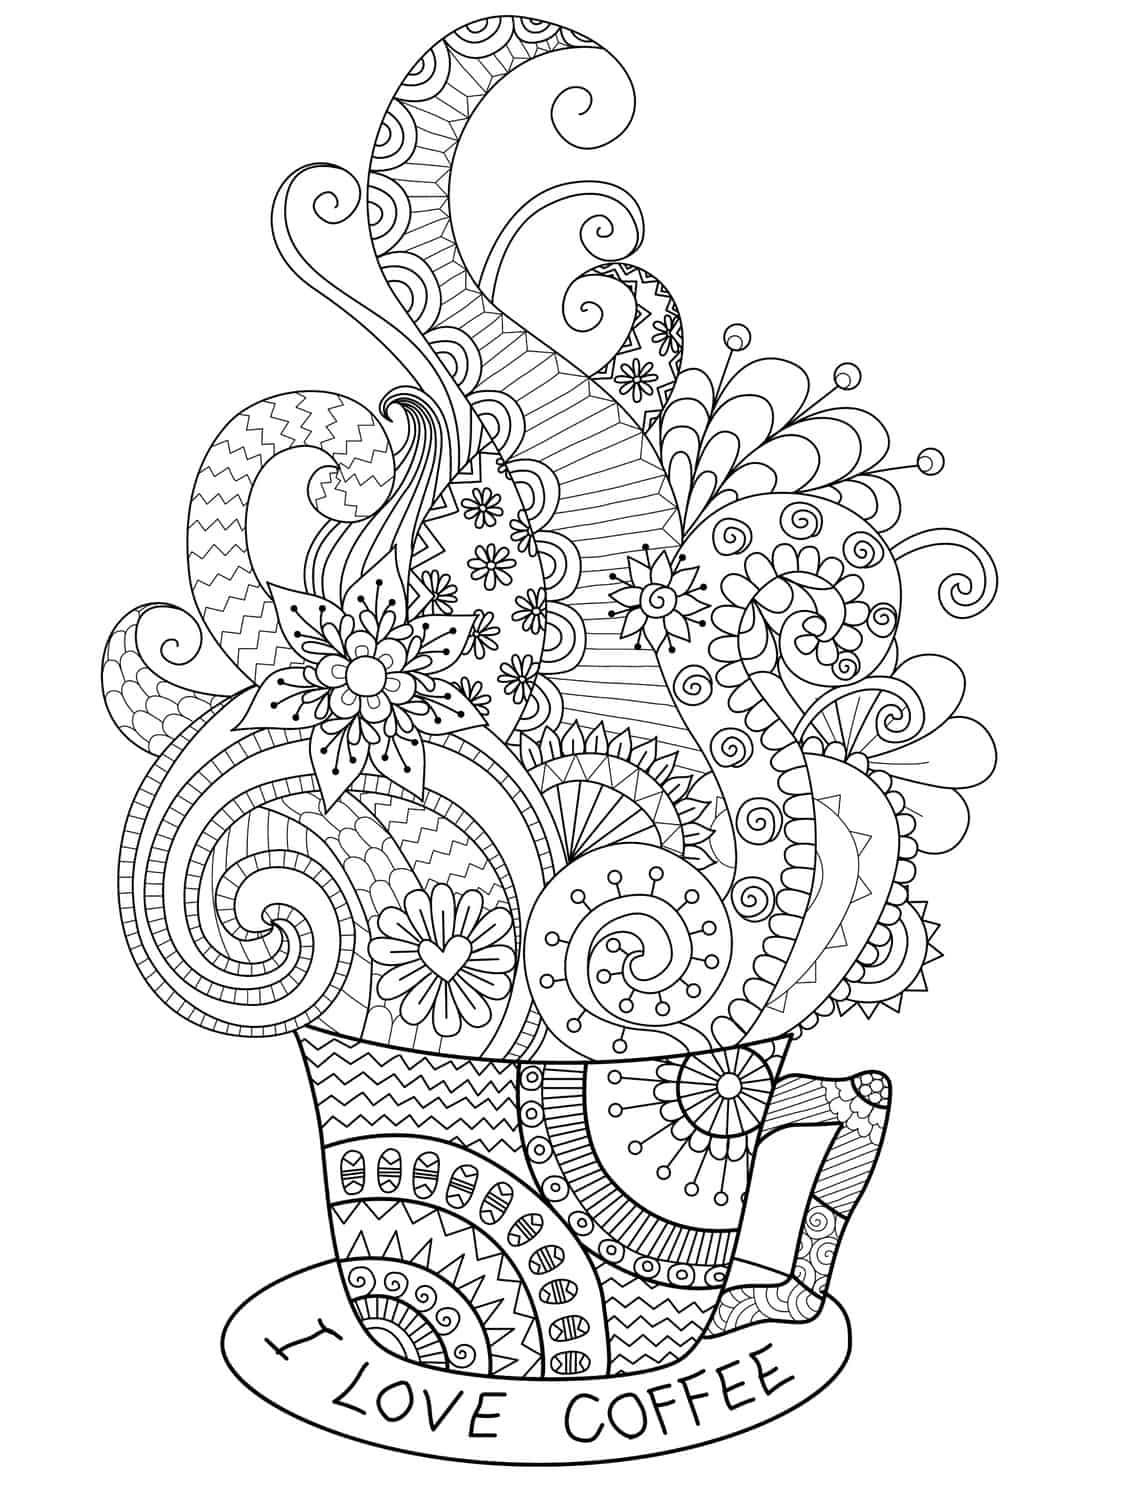 20 Gorgeous Free Printable Adult Coloring Pages - Page 10 of 22 ...